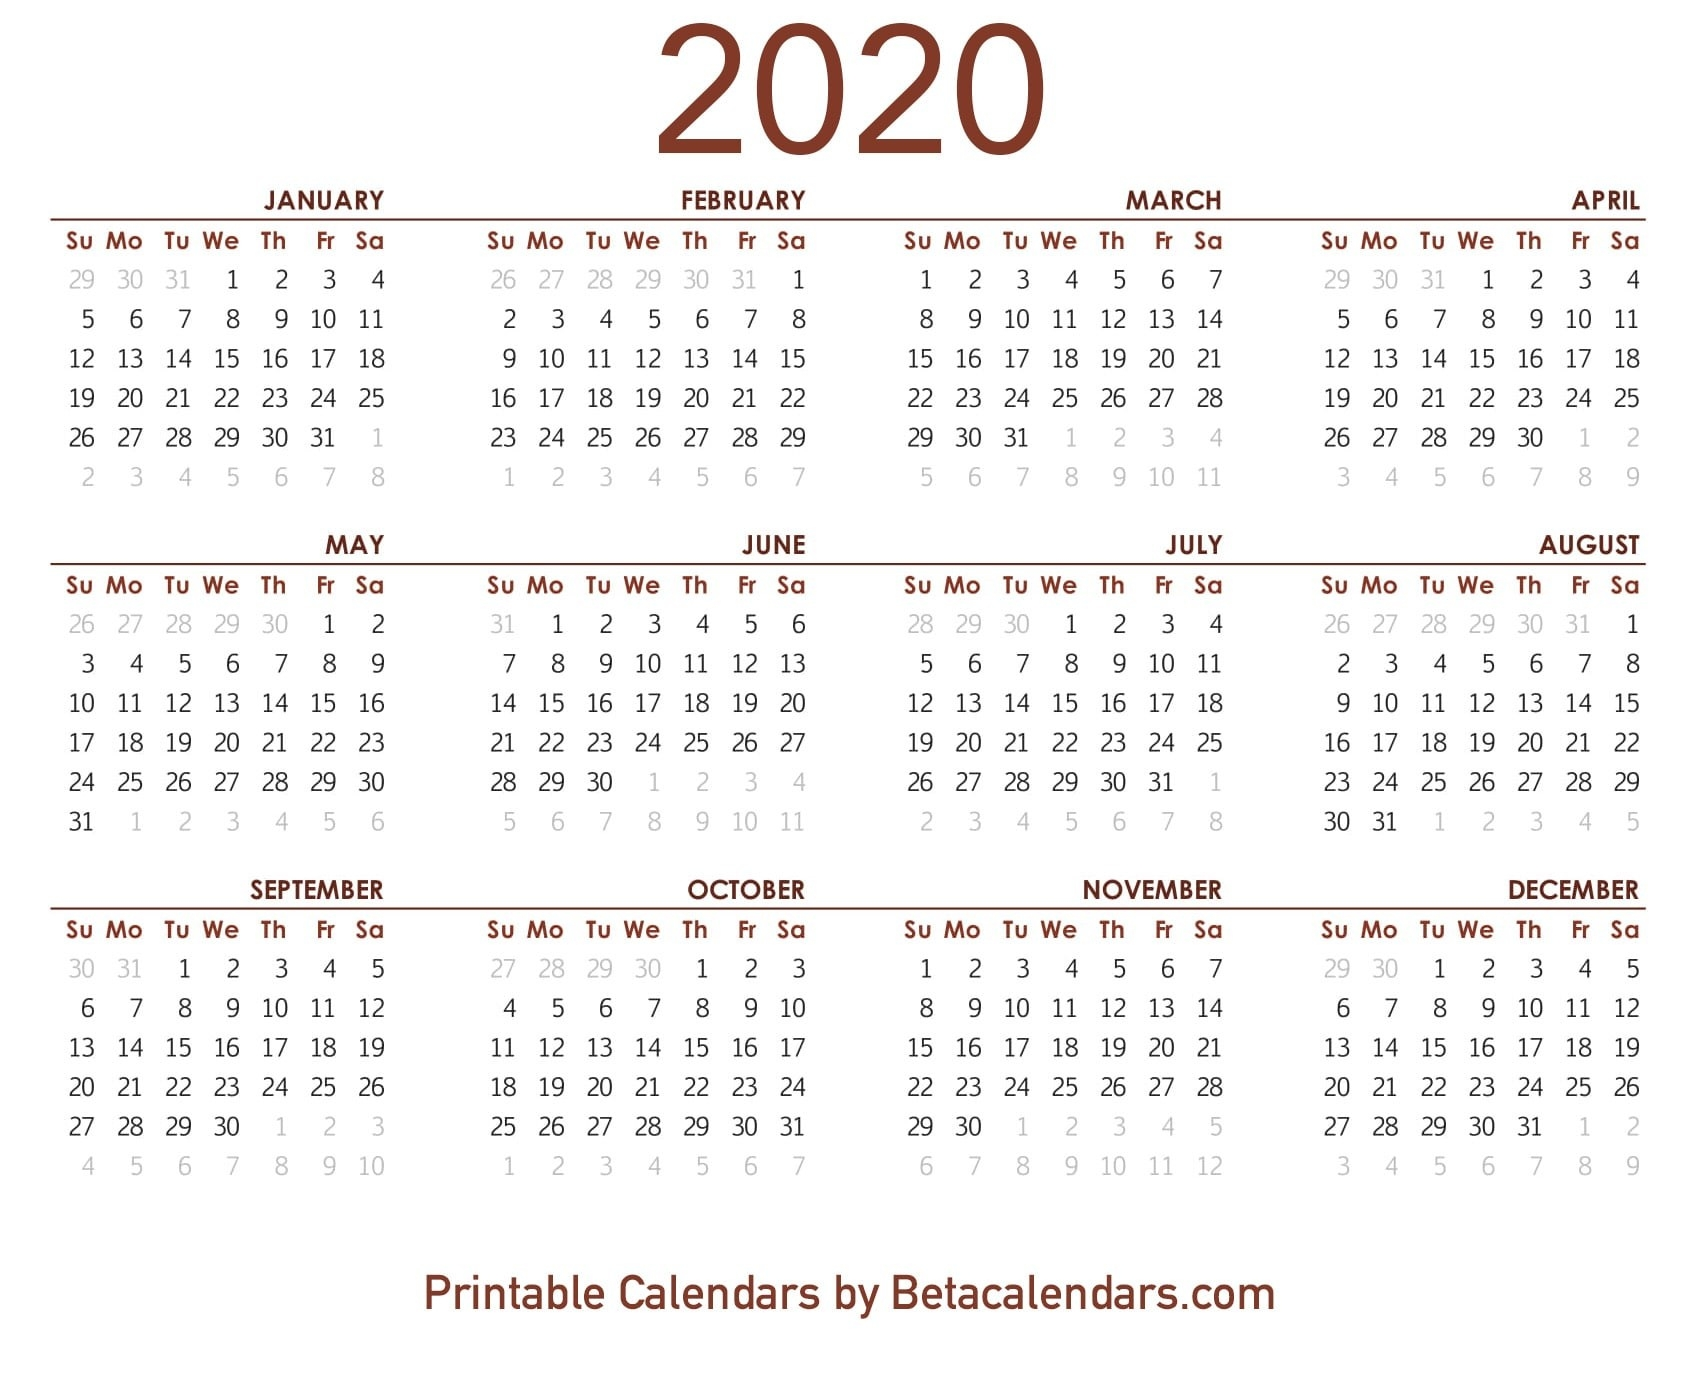 2020 Calendar - Beta Calendars  Where I Print A Full Page Monthly Calendar For 2020